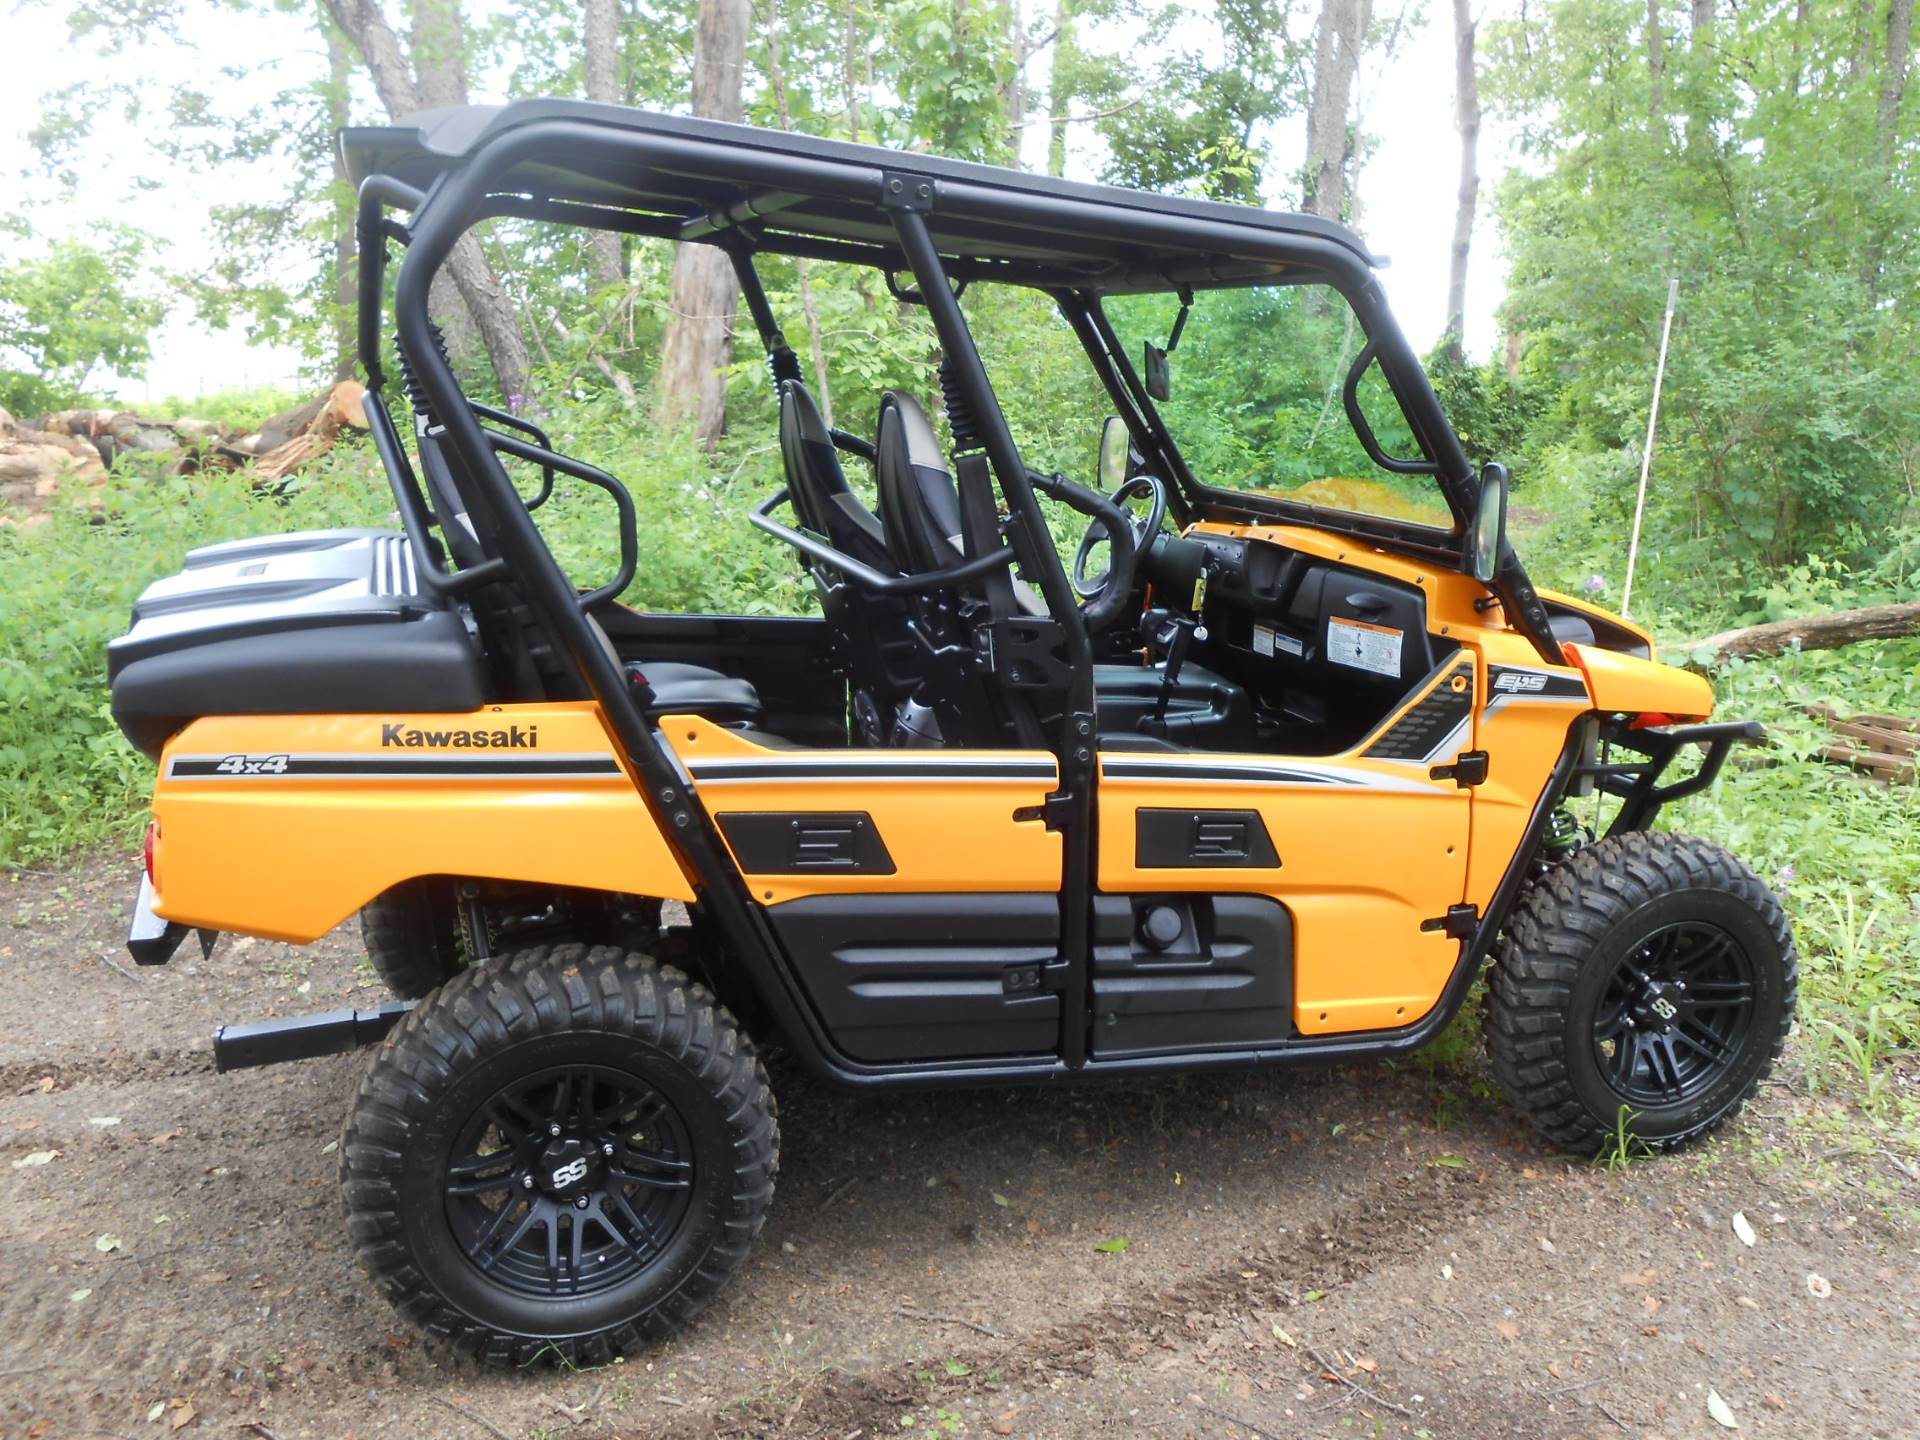 2013 Kawasaki Teryx4™ 750 4x4 EPS LE in Howell, Michigan - Photo 11